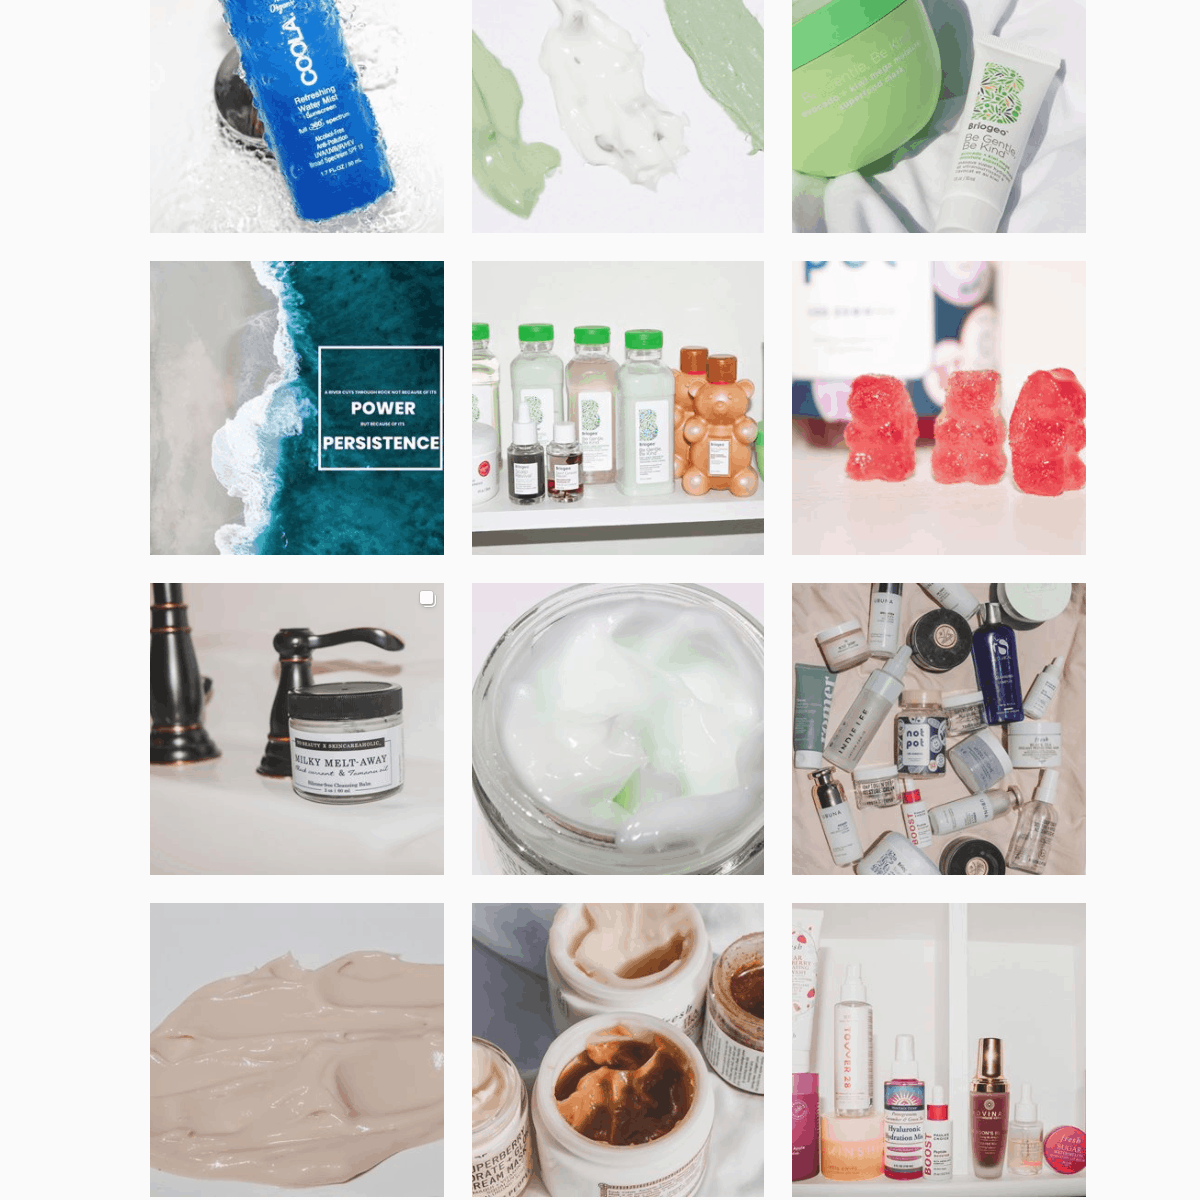 skincare instagram feed photo